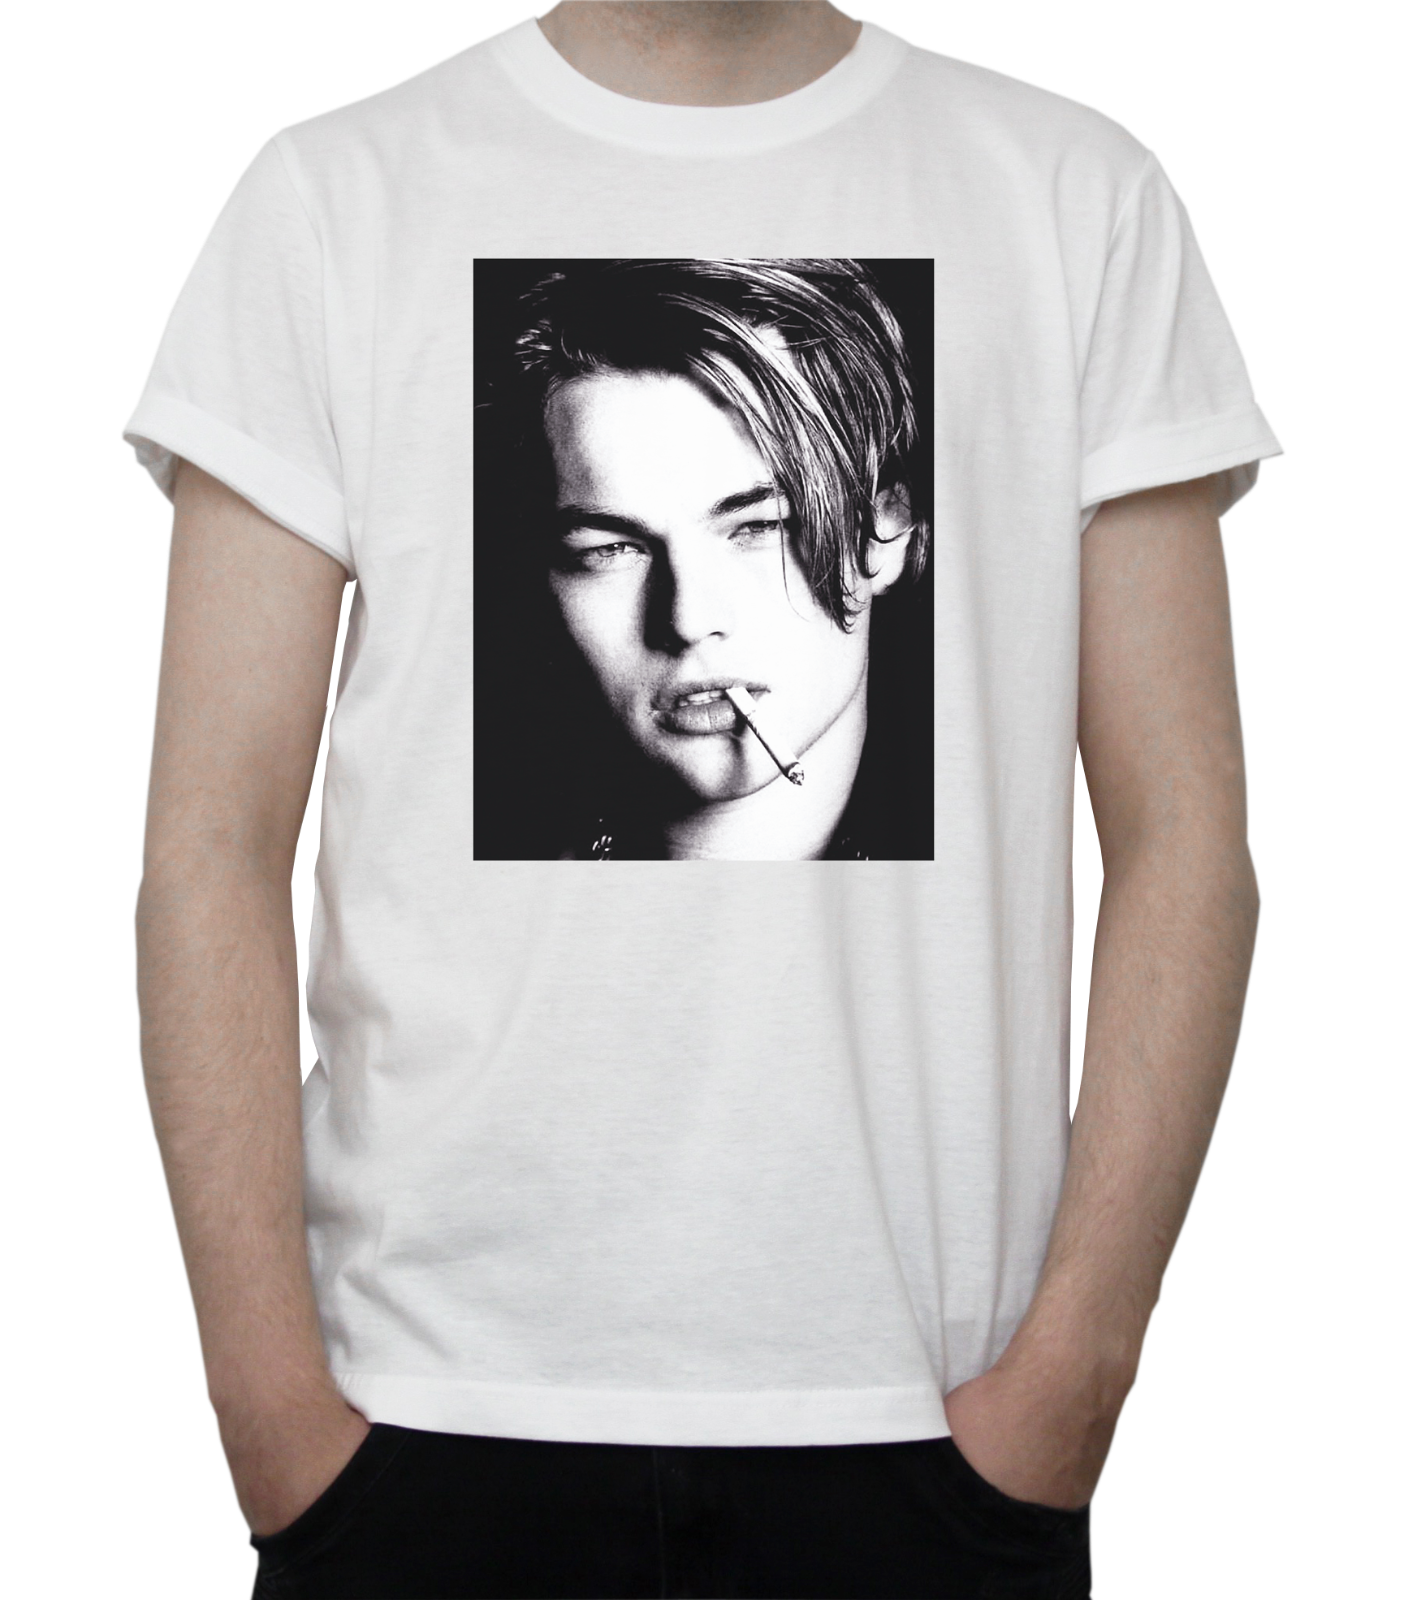 Young Leonardo Dicaprio Bw Portrait T-Shirt Hollywood Actor Titanic Grey White Adults Casual Tee Shirt image